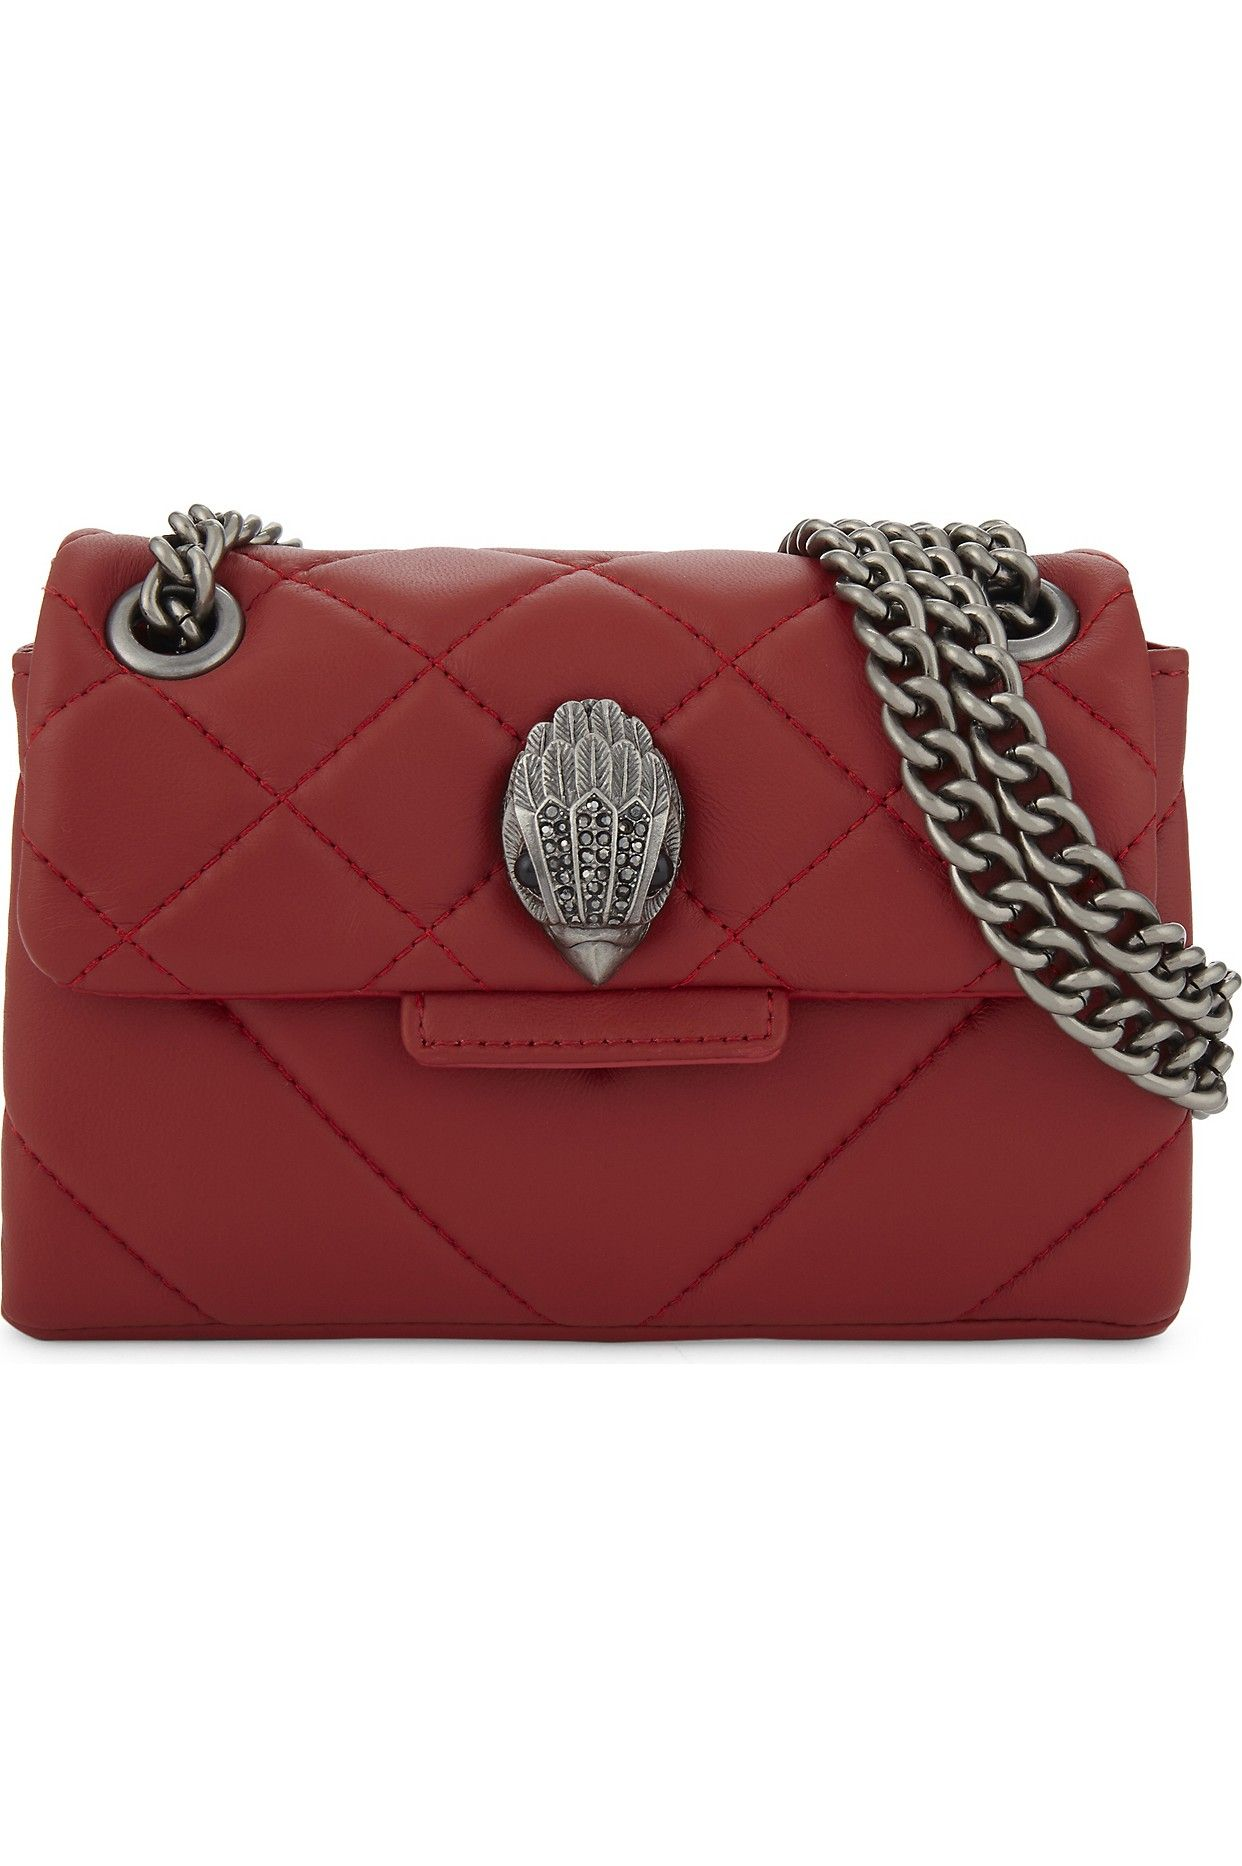 fcbf83ad7591 KURT GEIGER LONDON - Mini Kensington quilted leather cross-body bag |  Selfridges.com